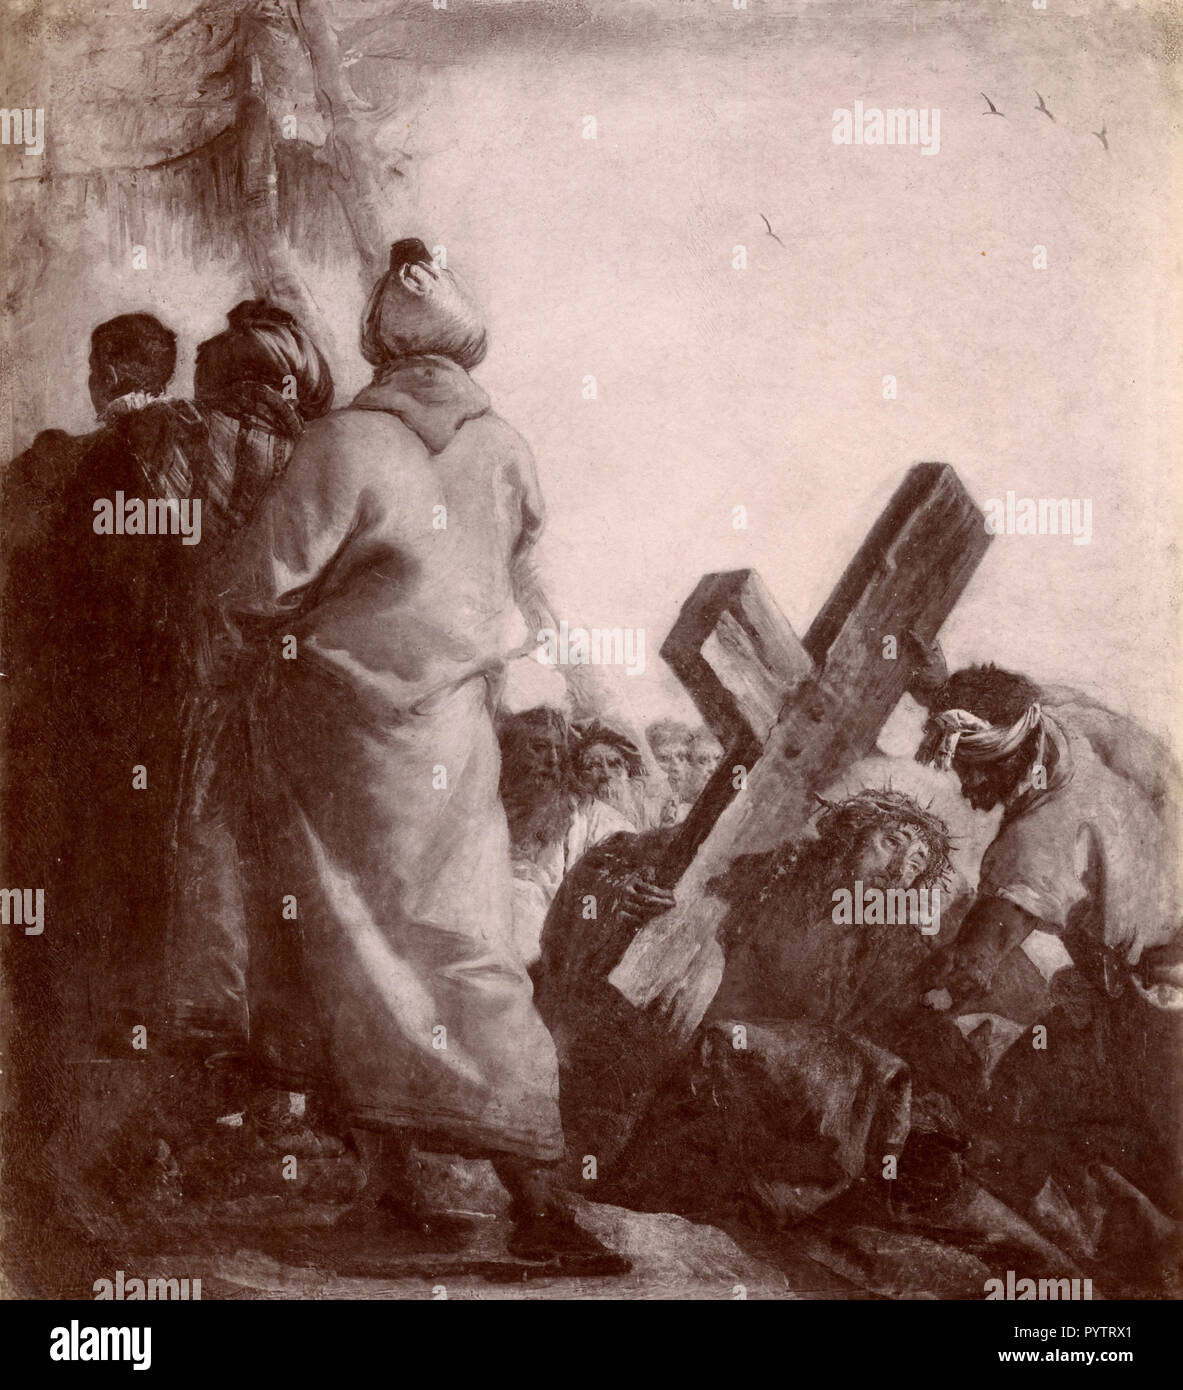 Via Crucis Station Five, painting by G.B. Tiepolo, Frari Church, Veince, Italy 1880s - Stock Image